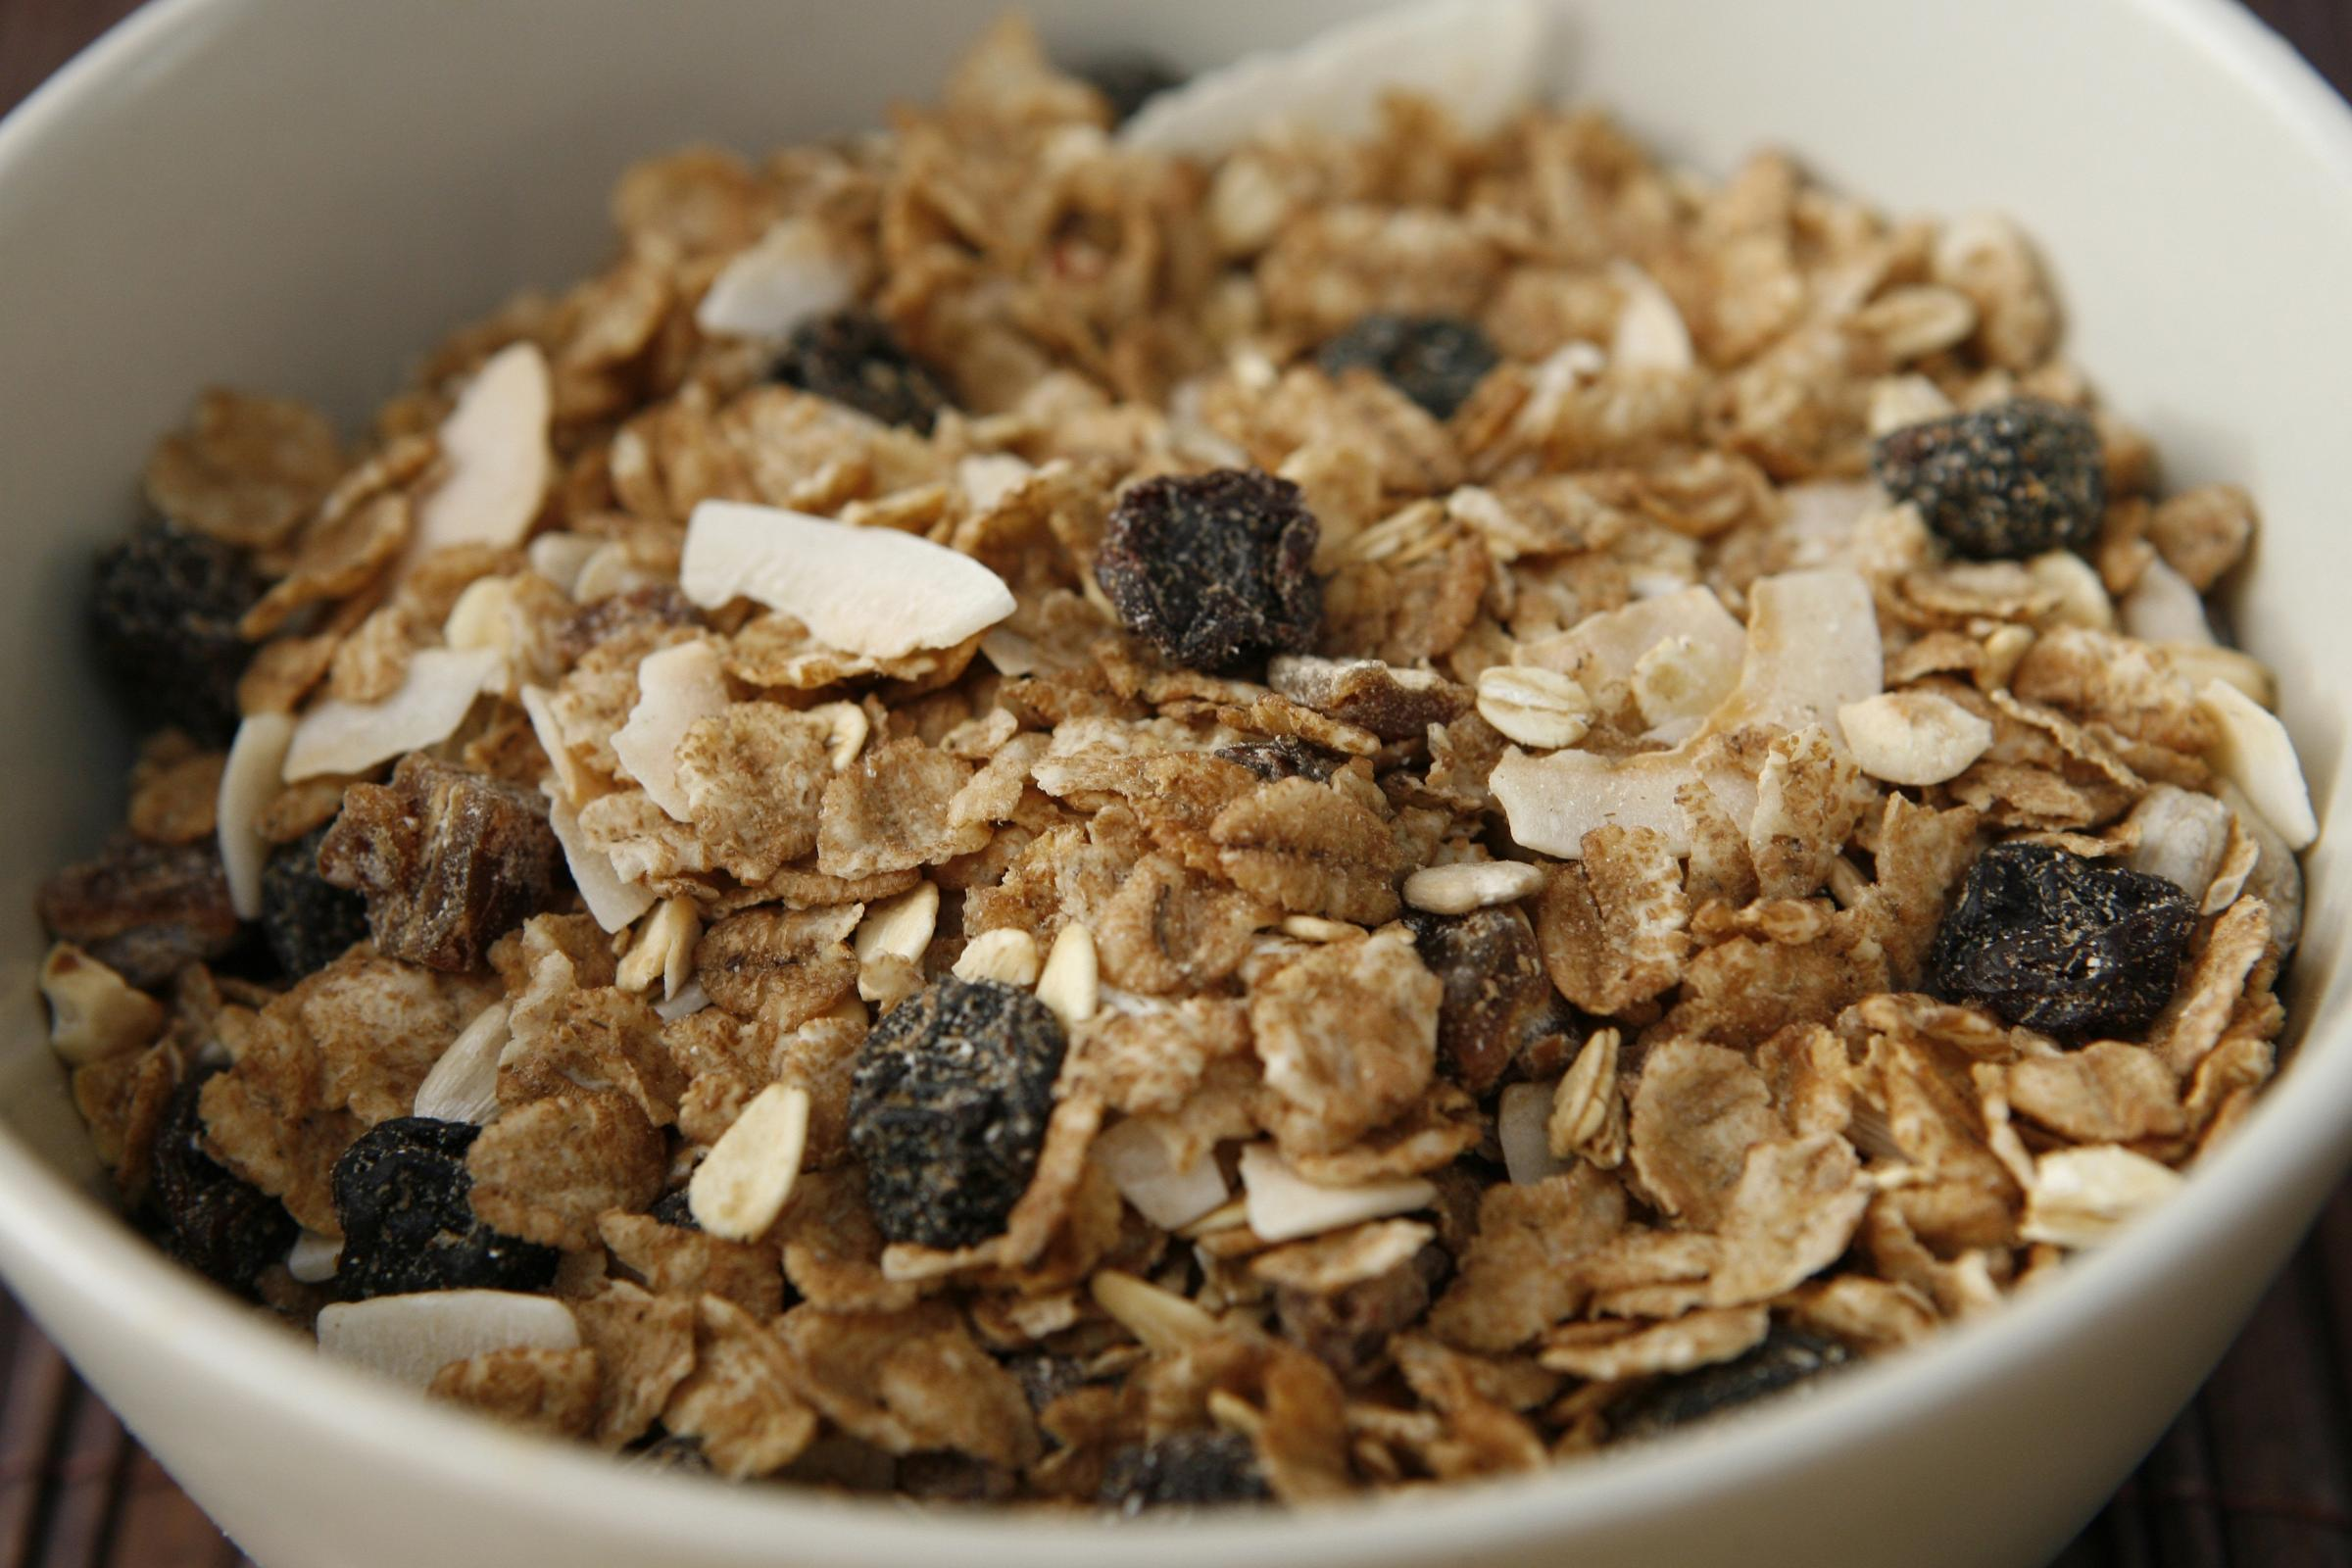 Breakfast cereal stock